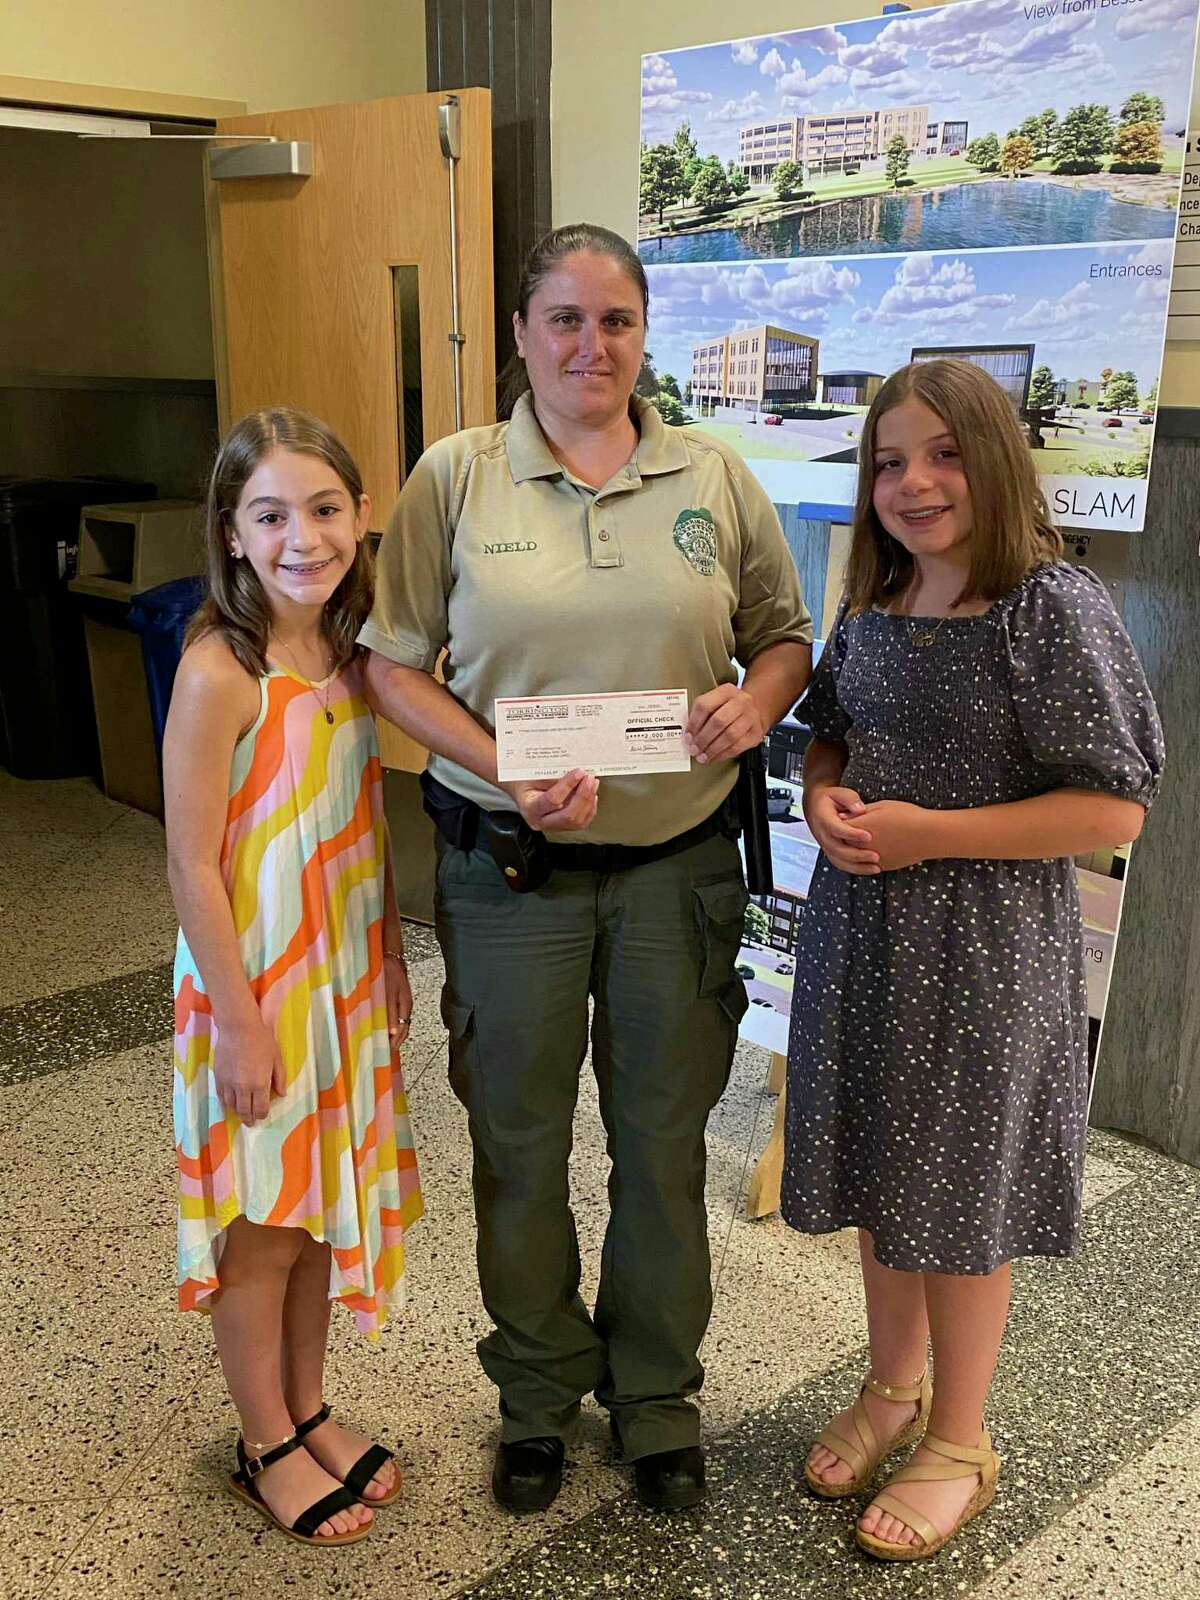 Julia Lopez, 11, right, and her sister Alina, 13, made a donation of $2,000 to the city's animal shelter project July 7 during the Board of Public Safety meeting. With them is Animal Control Officer Caitlin Nield.